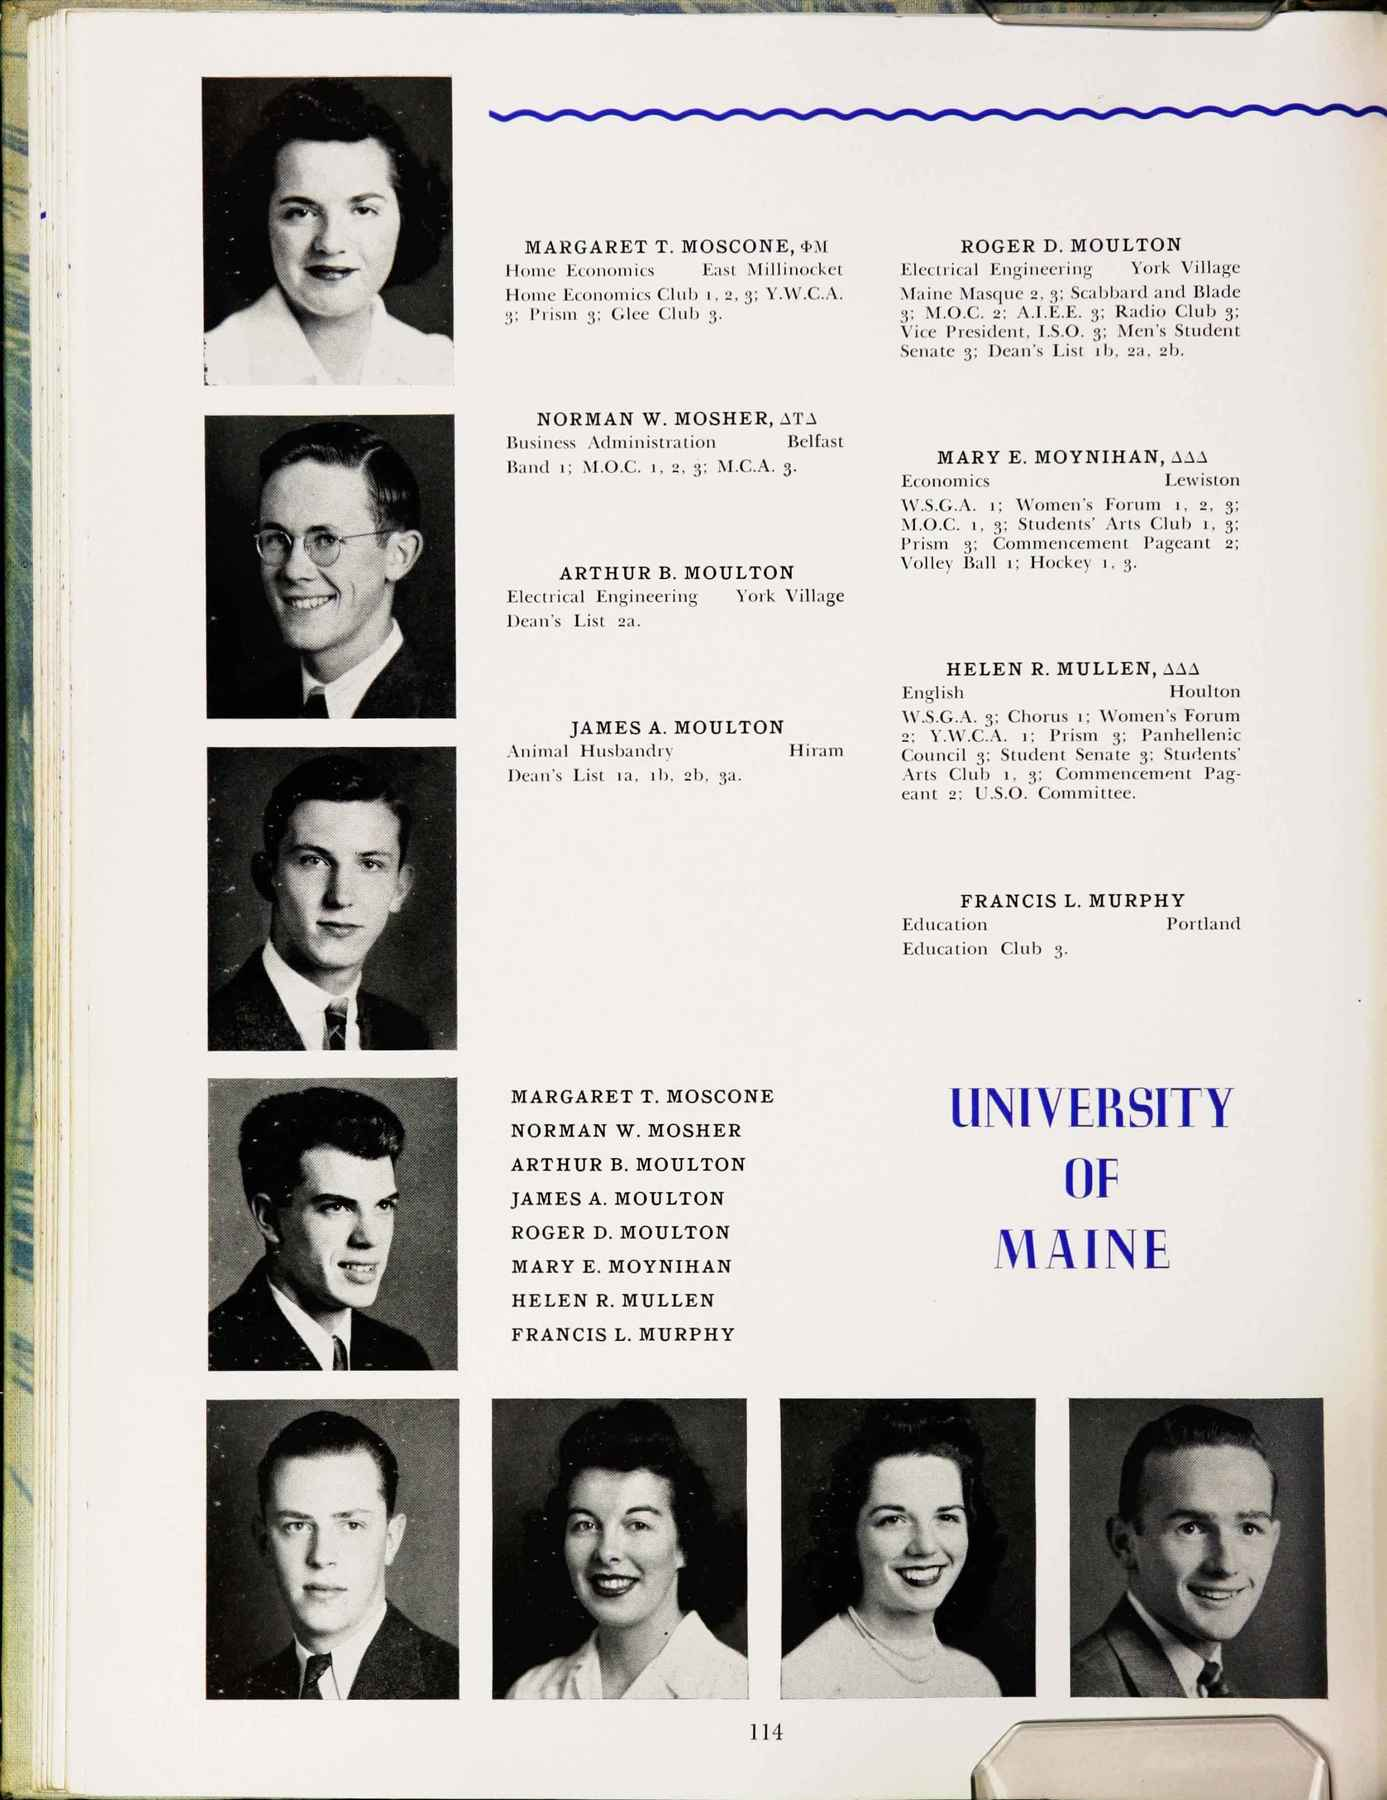 pg114 of the 1943 University of Maine yearbook, with the entries for Arthur B. Moulton & Roger D. Moulton; Arthur is below the lad with glasses